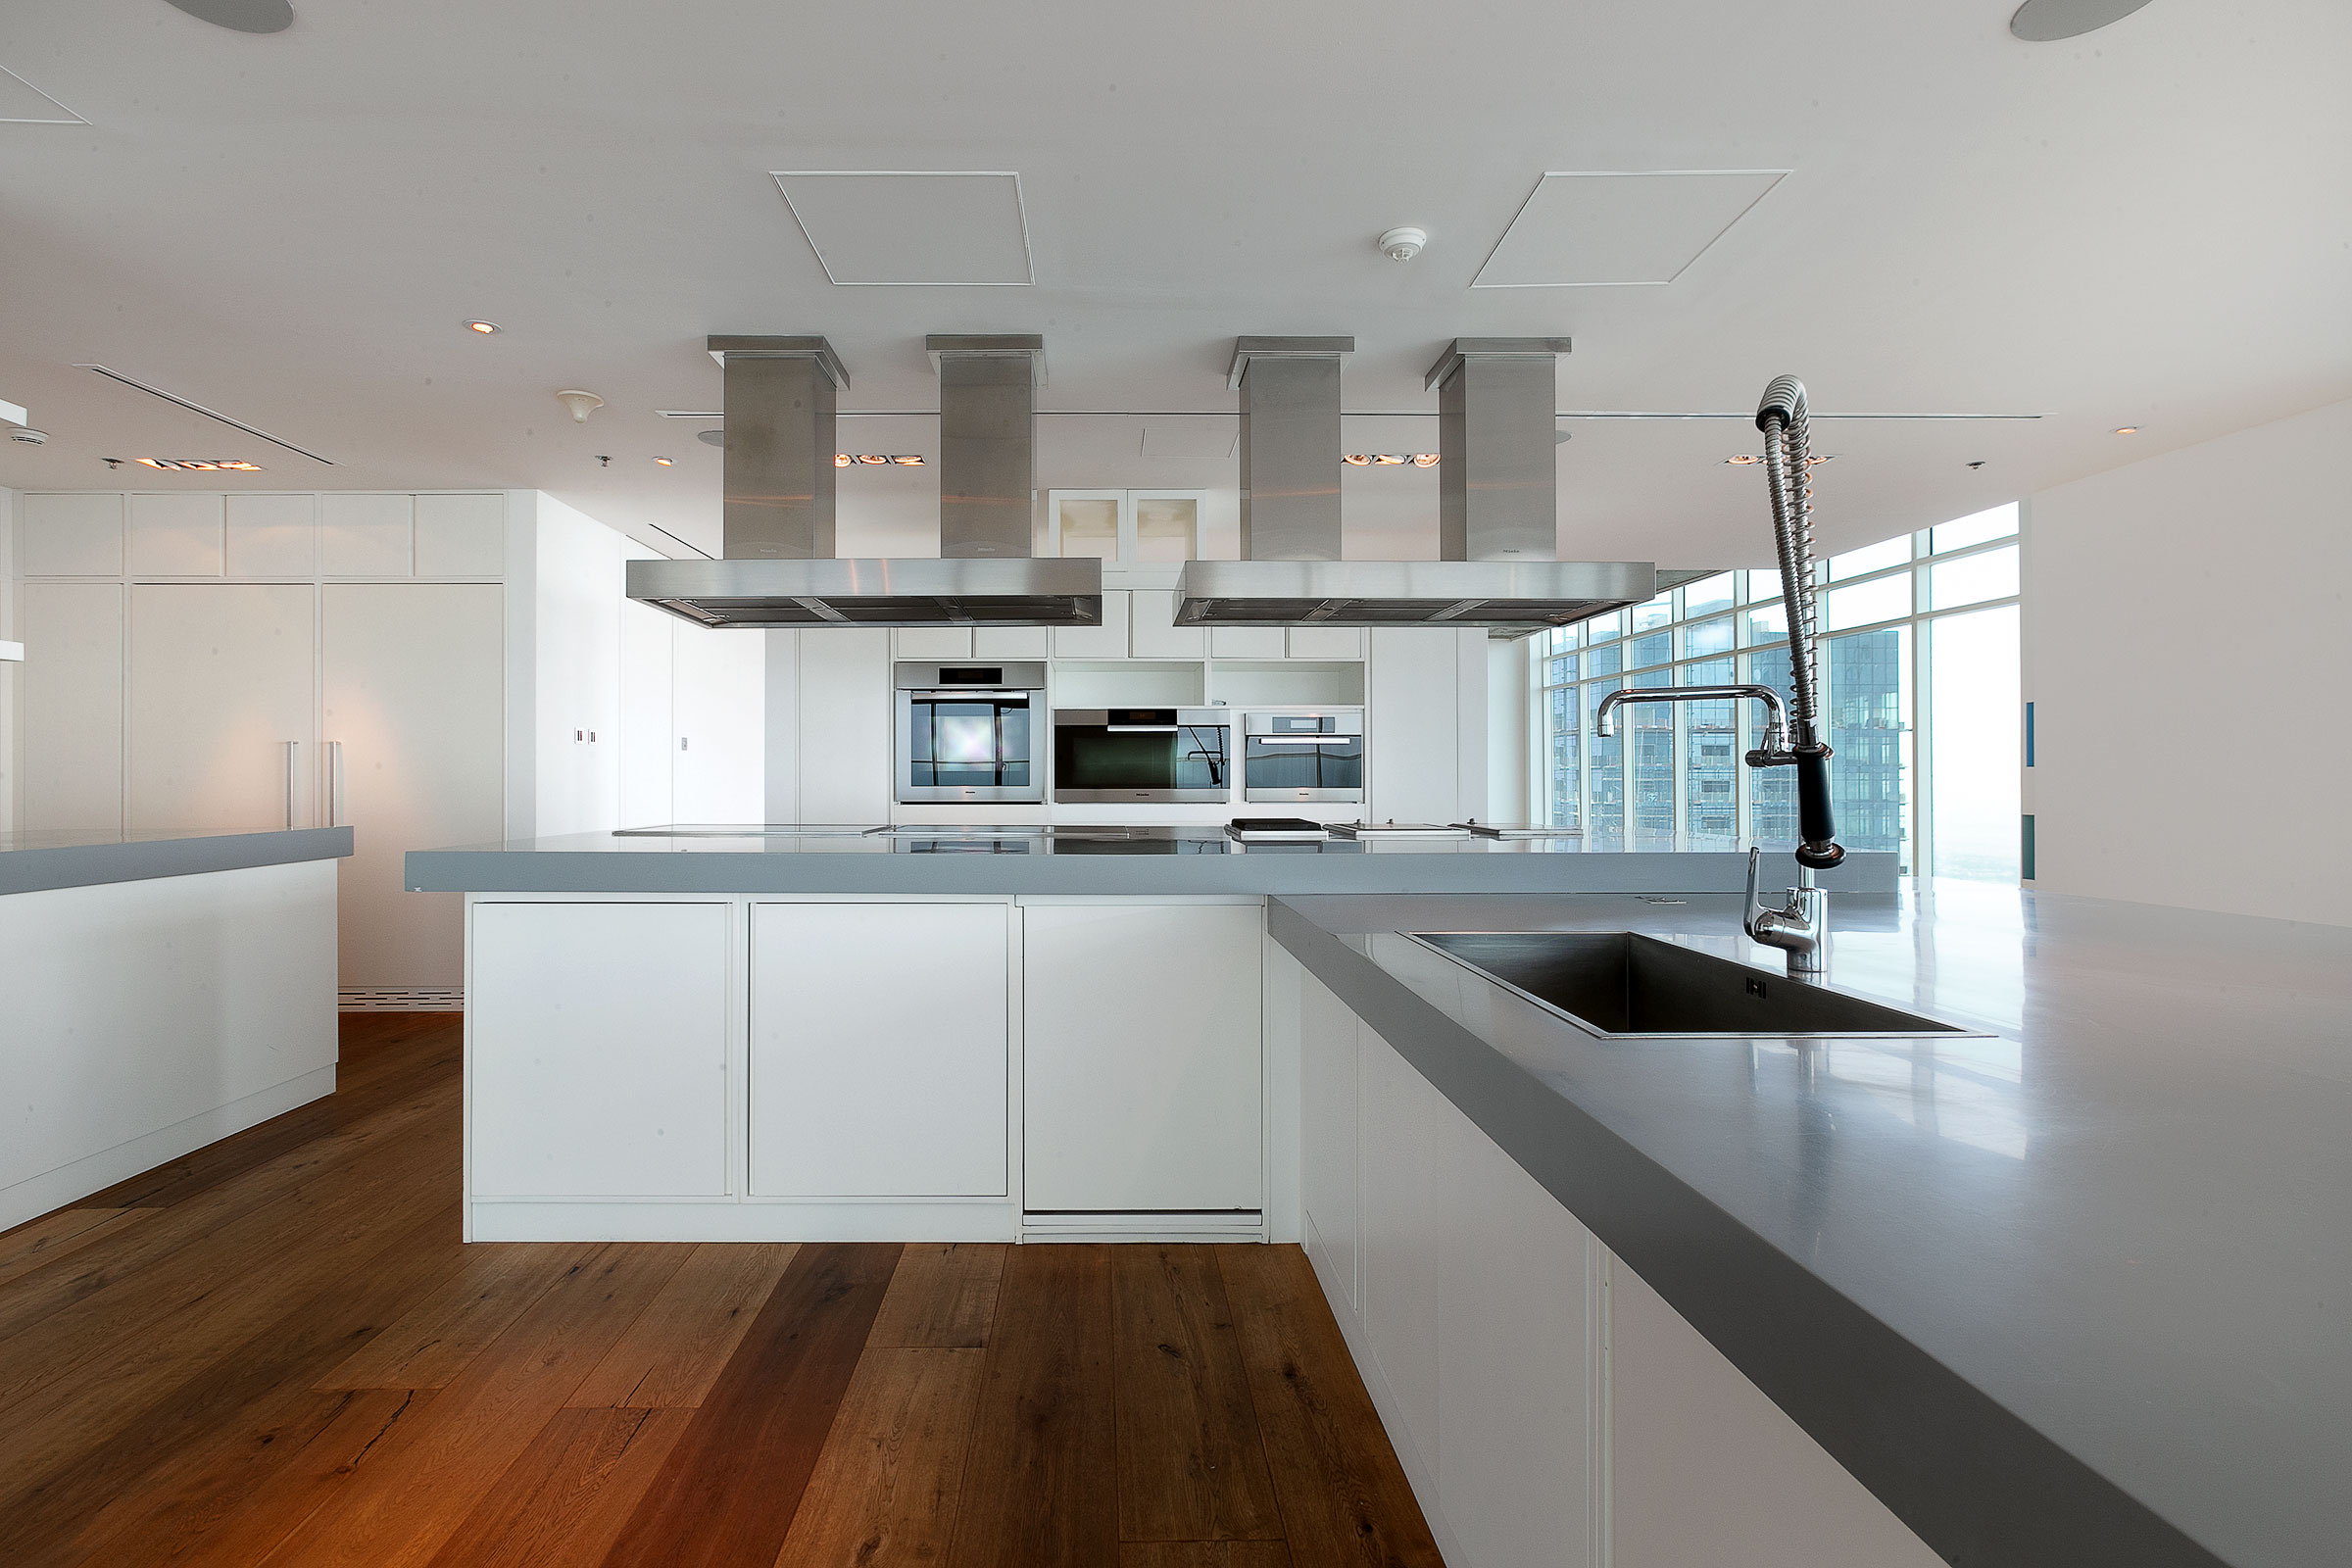 Contemporary Lifestyle Living in the Sky